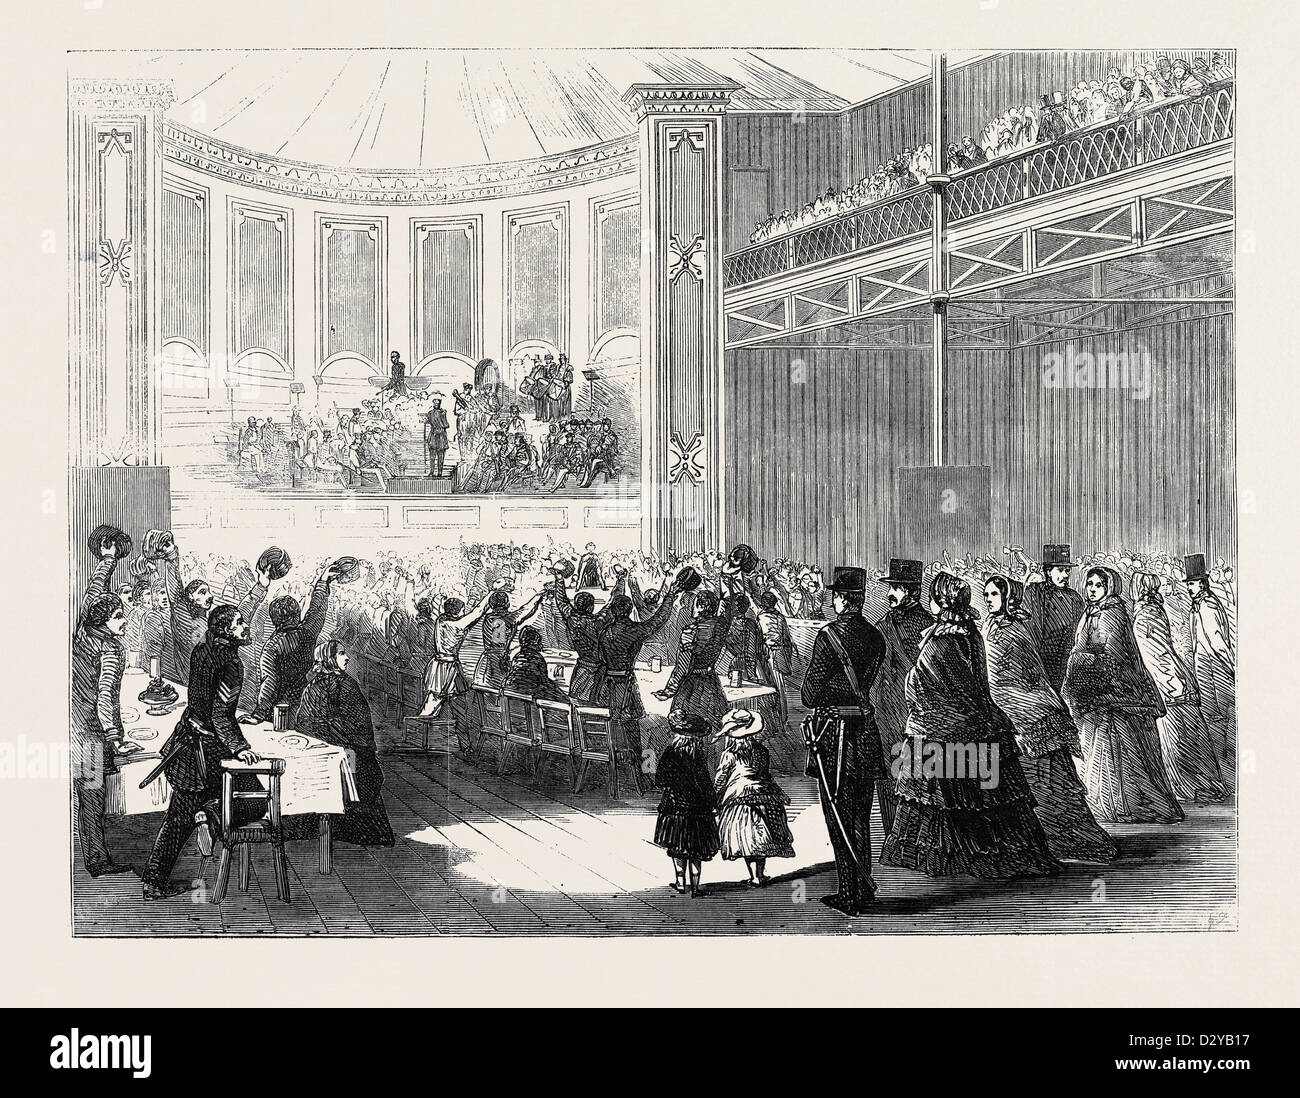 DINNER TO THE 68TH REGIMENT IN THE CRYSTAL PALACE - Stock Image